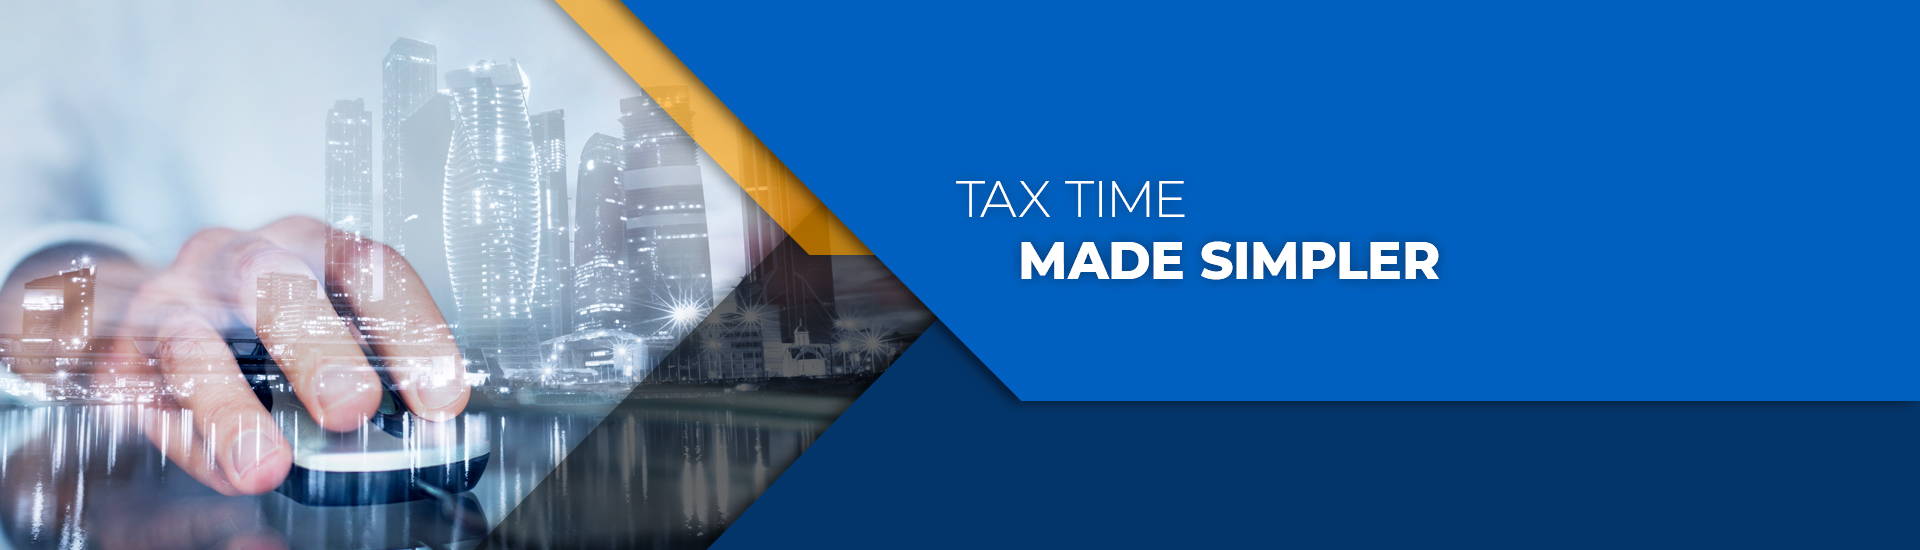 Anzelc & Associates Inc. Tax Services